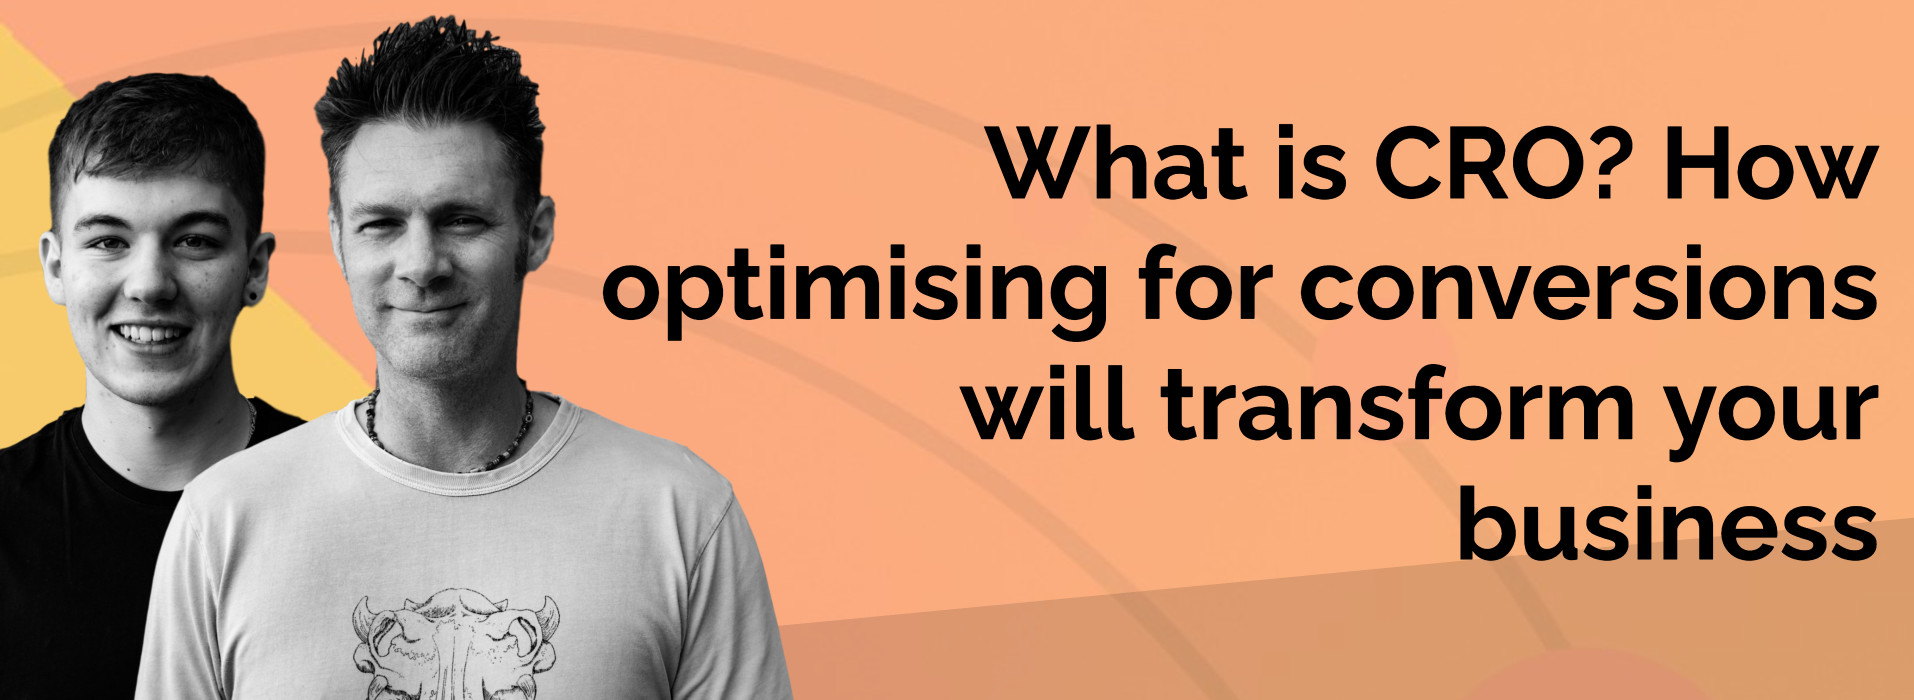 LIVE WEBINAR: What is CRO? How optimising for conversions will transform your business